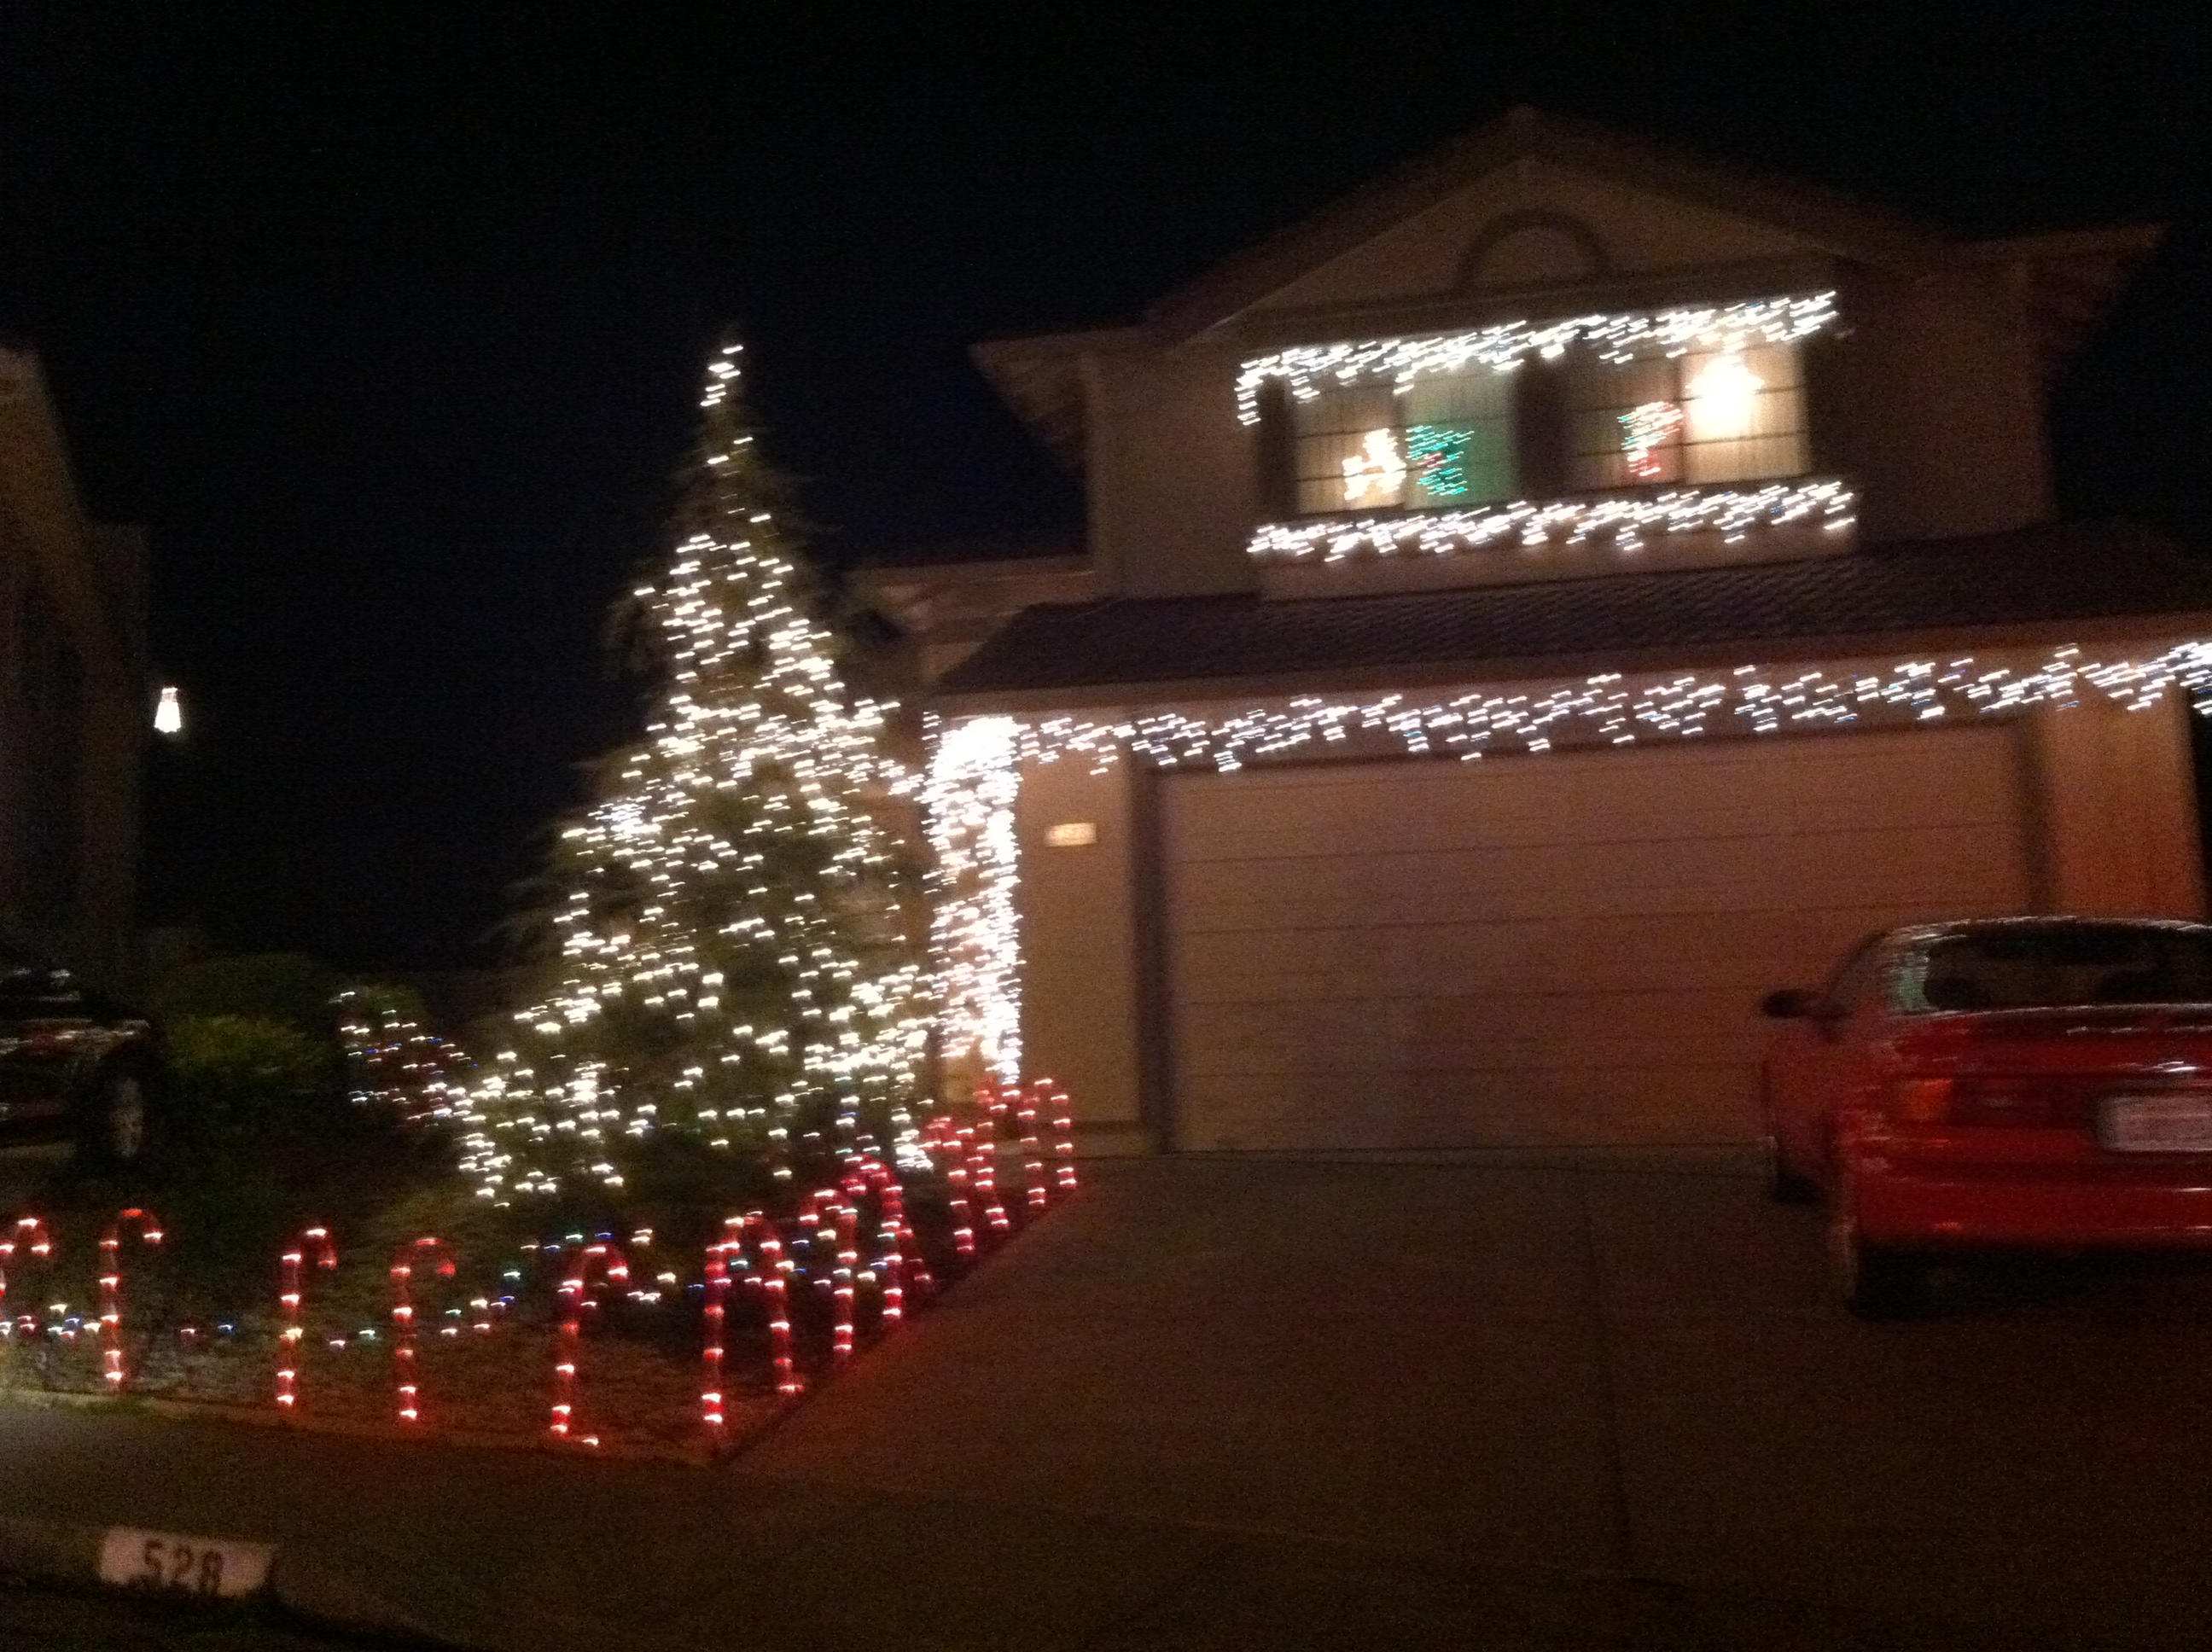 candy cane fence - Driveway Christmas Lights